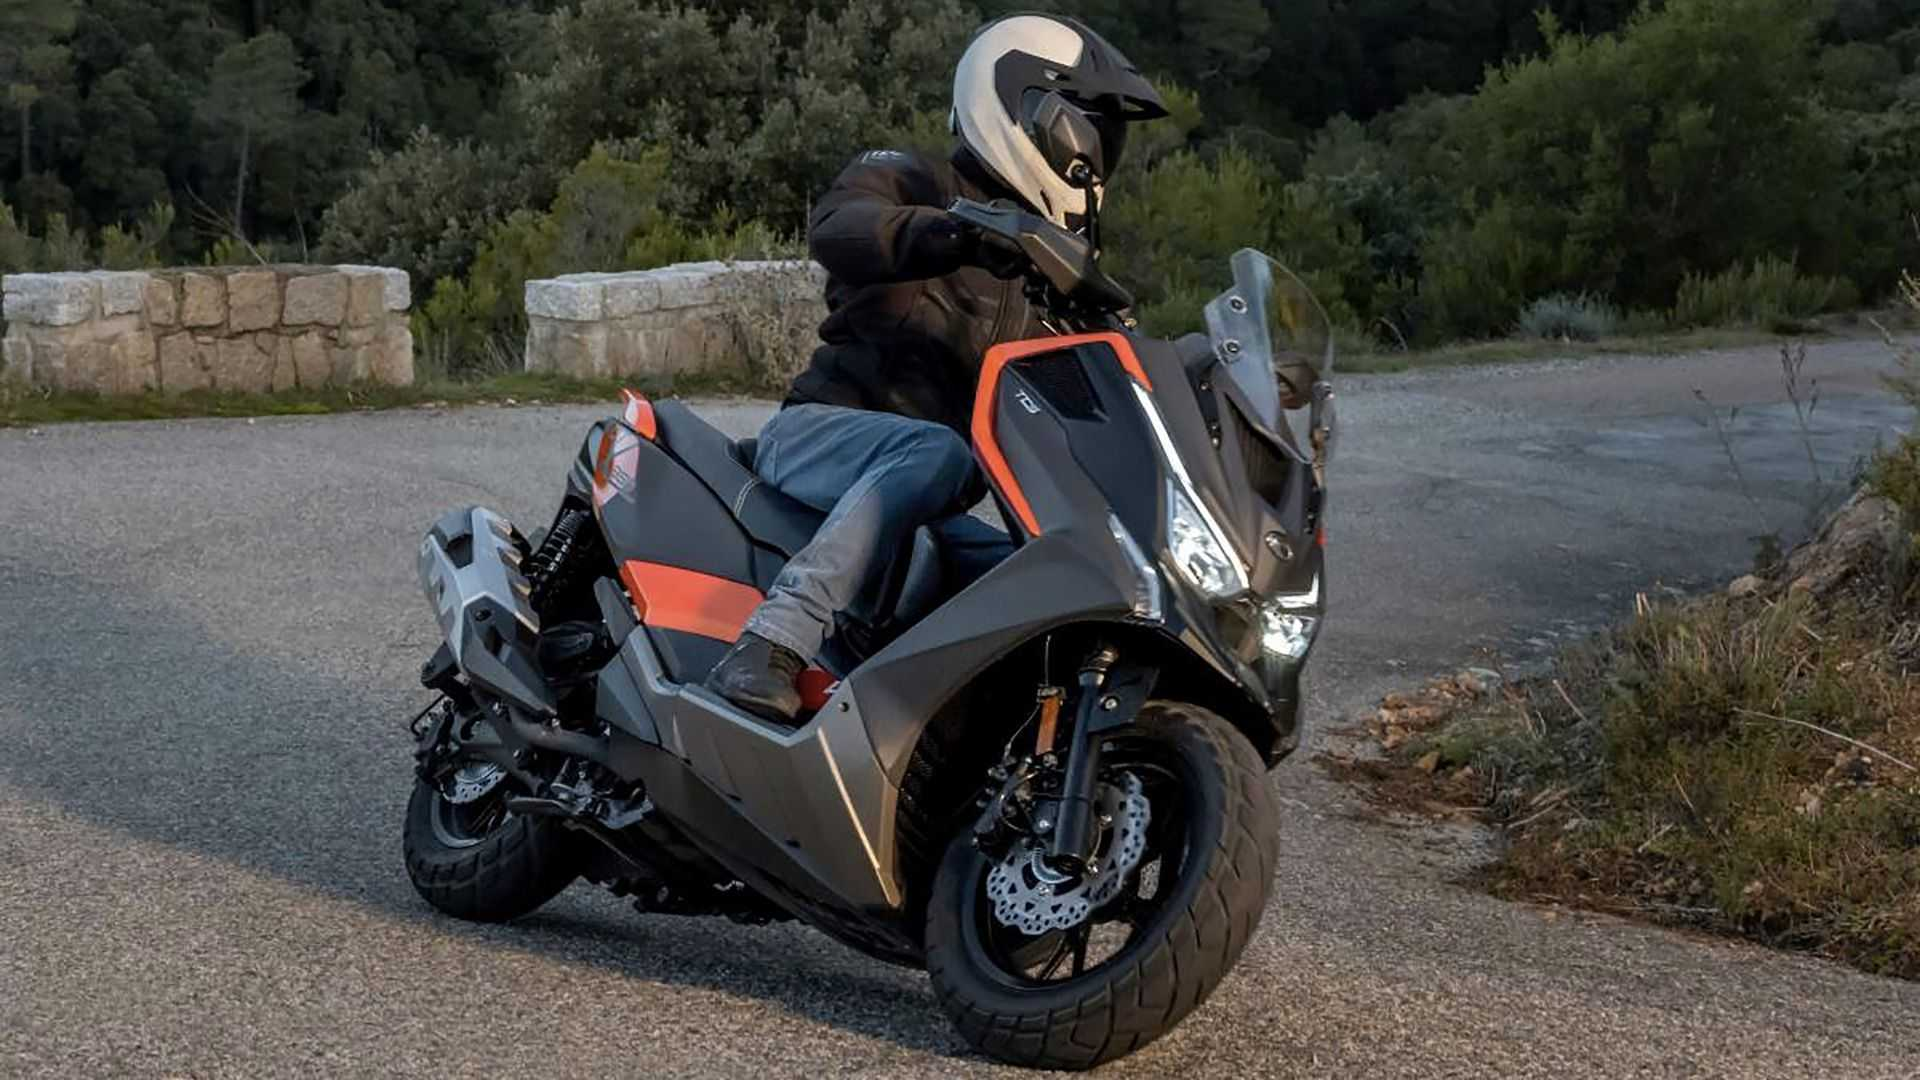 2021 Kymco DT X360 adventure scooter finally unveiled